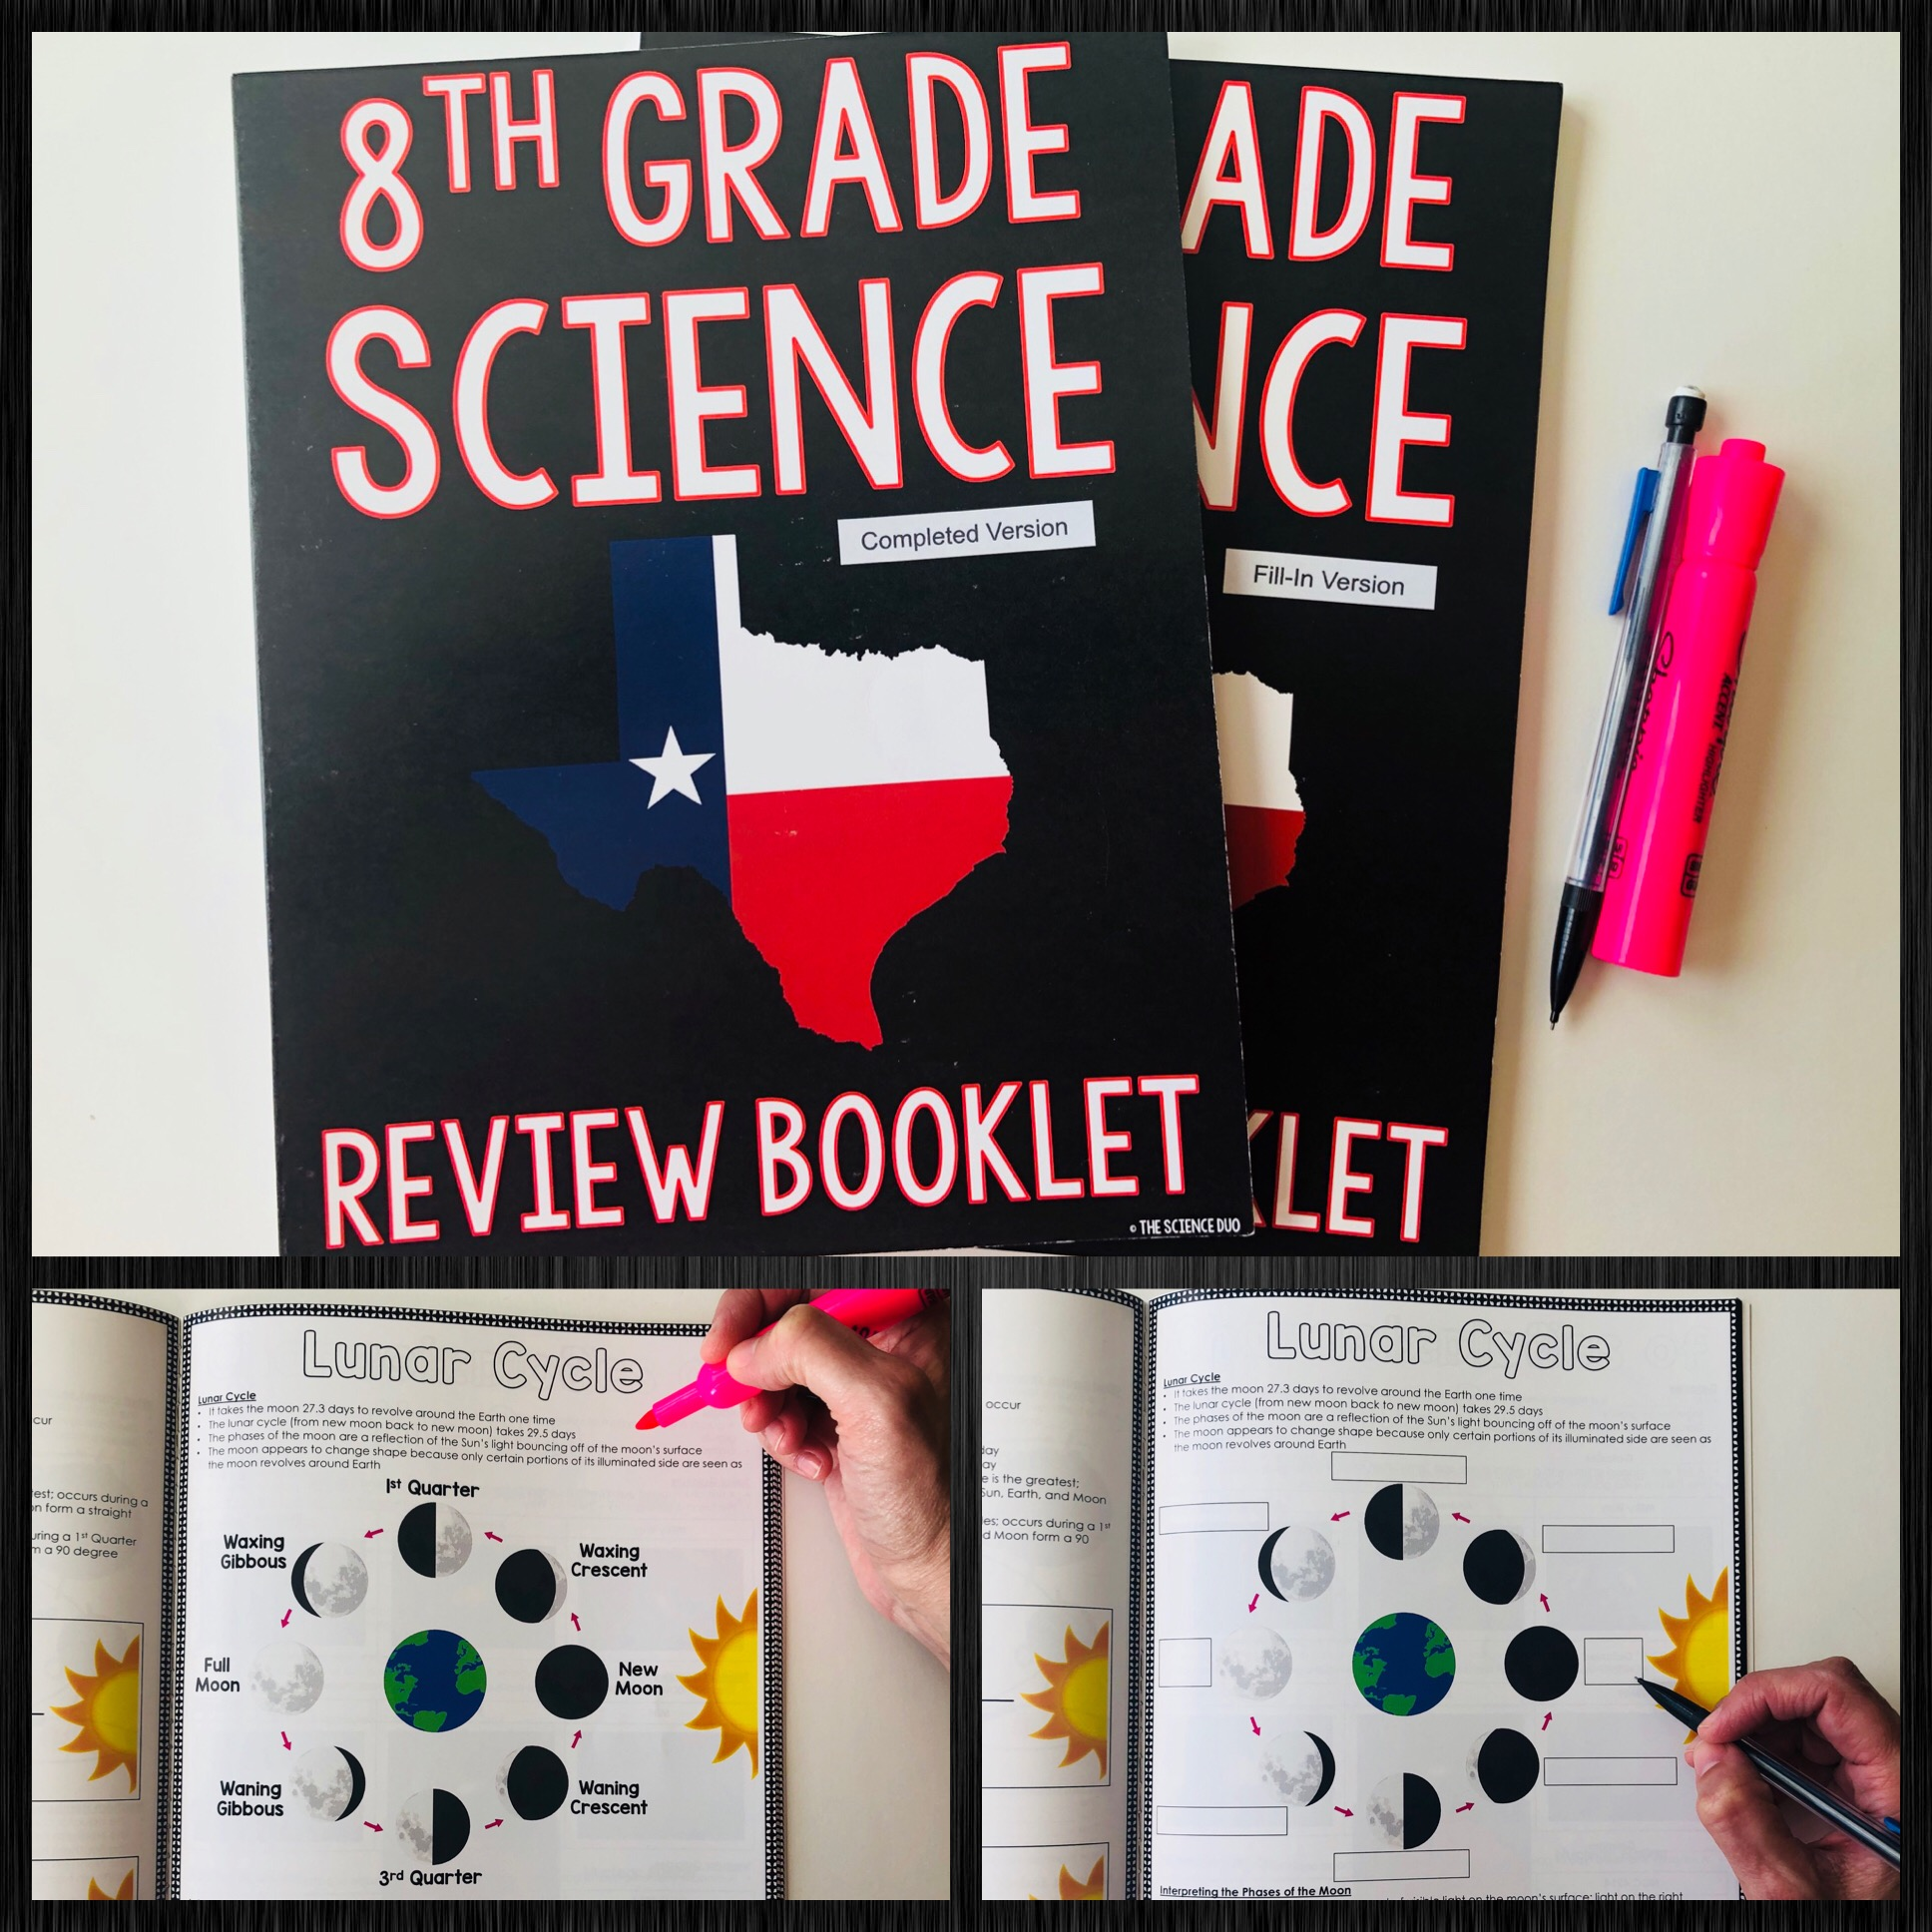 8th Grade Science Review Booklet